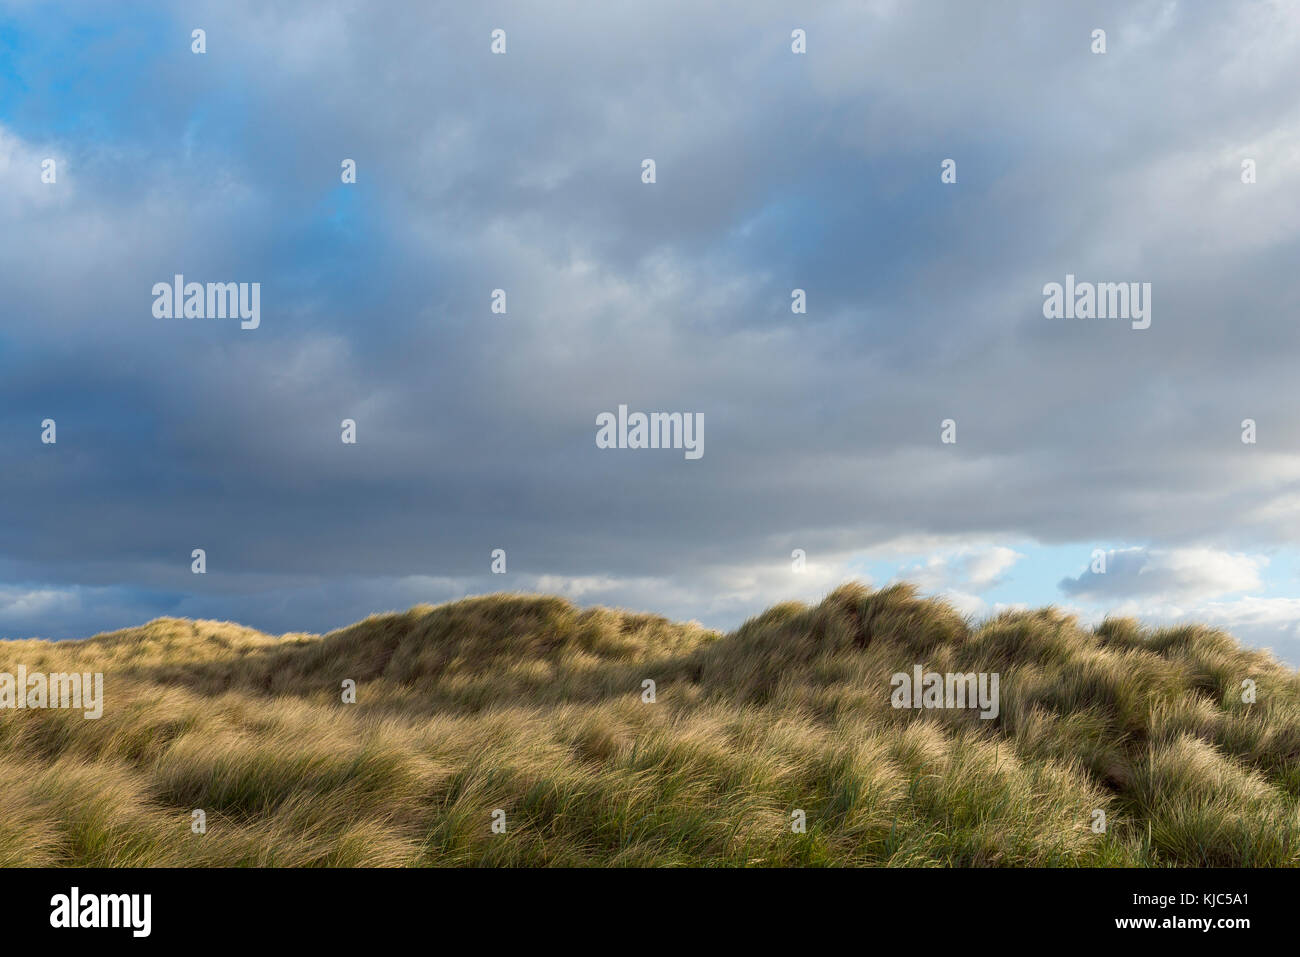 Dune grass blowing in the wind at the beach on a cloudy day in Bamburgh in Northumberland, England, United Kingdom - Stock Image